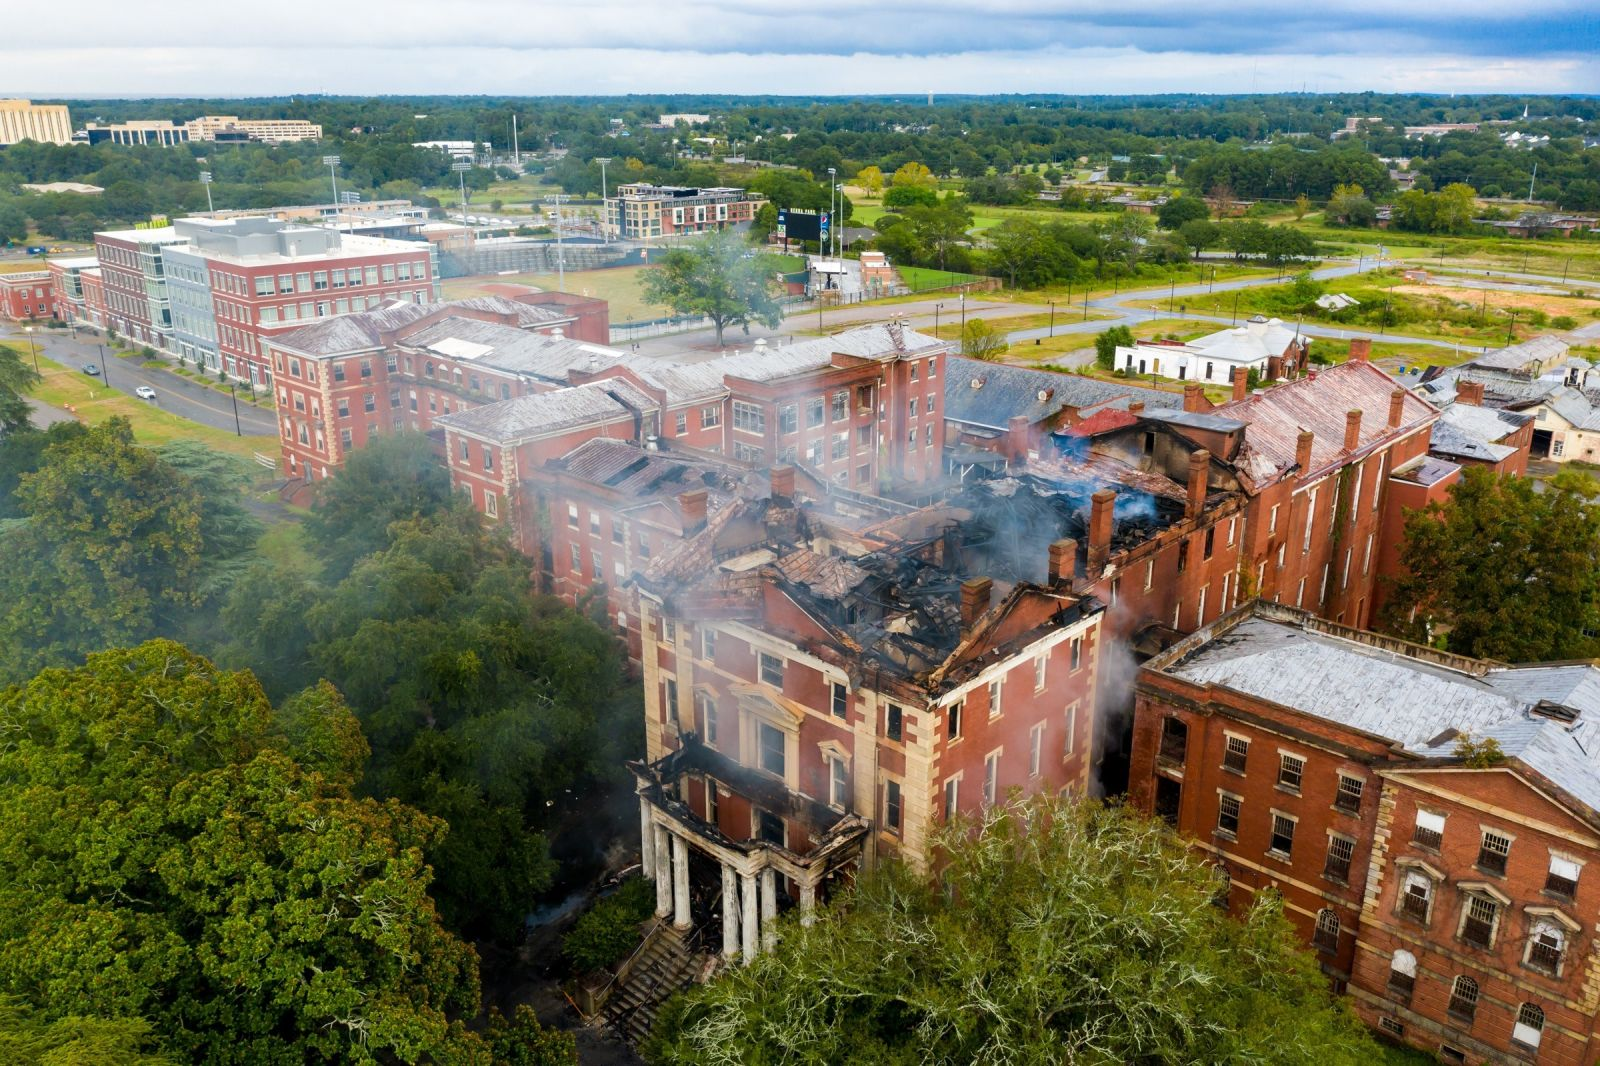 A September fire destroyed the Babcock Building's iconic cupola. (Photo/Jeff Blake/JeffBlakePhoto.com)